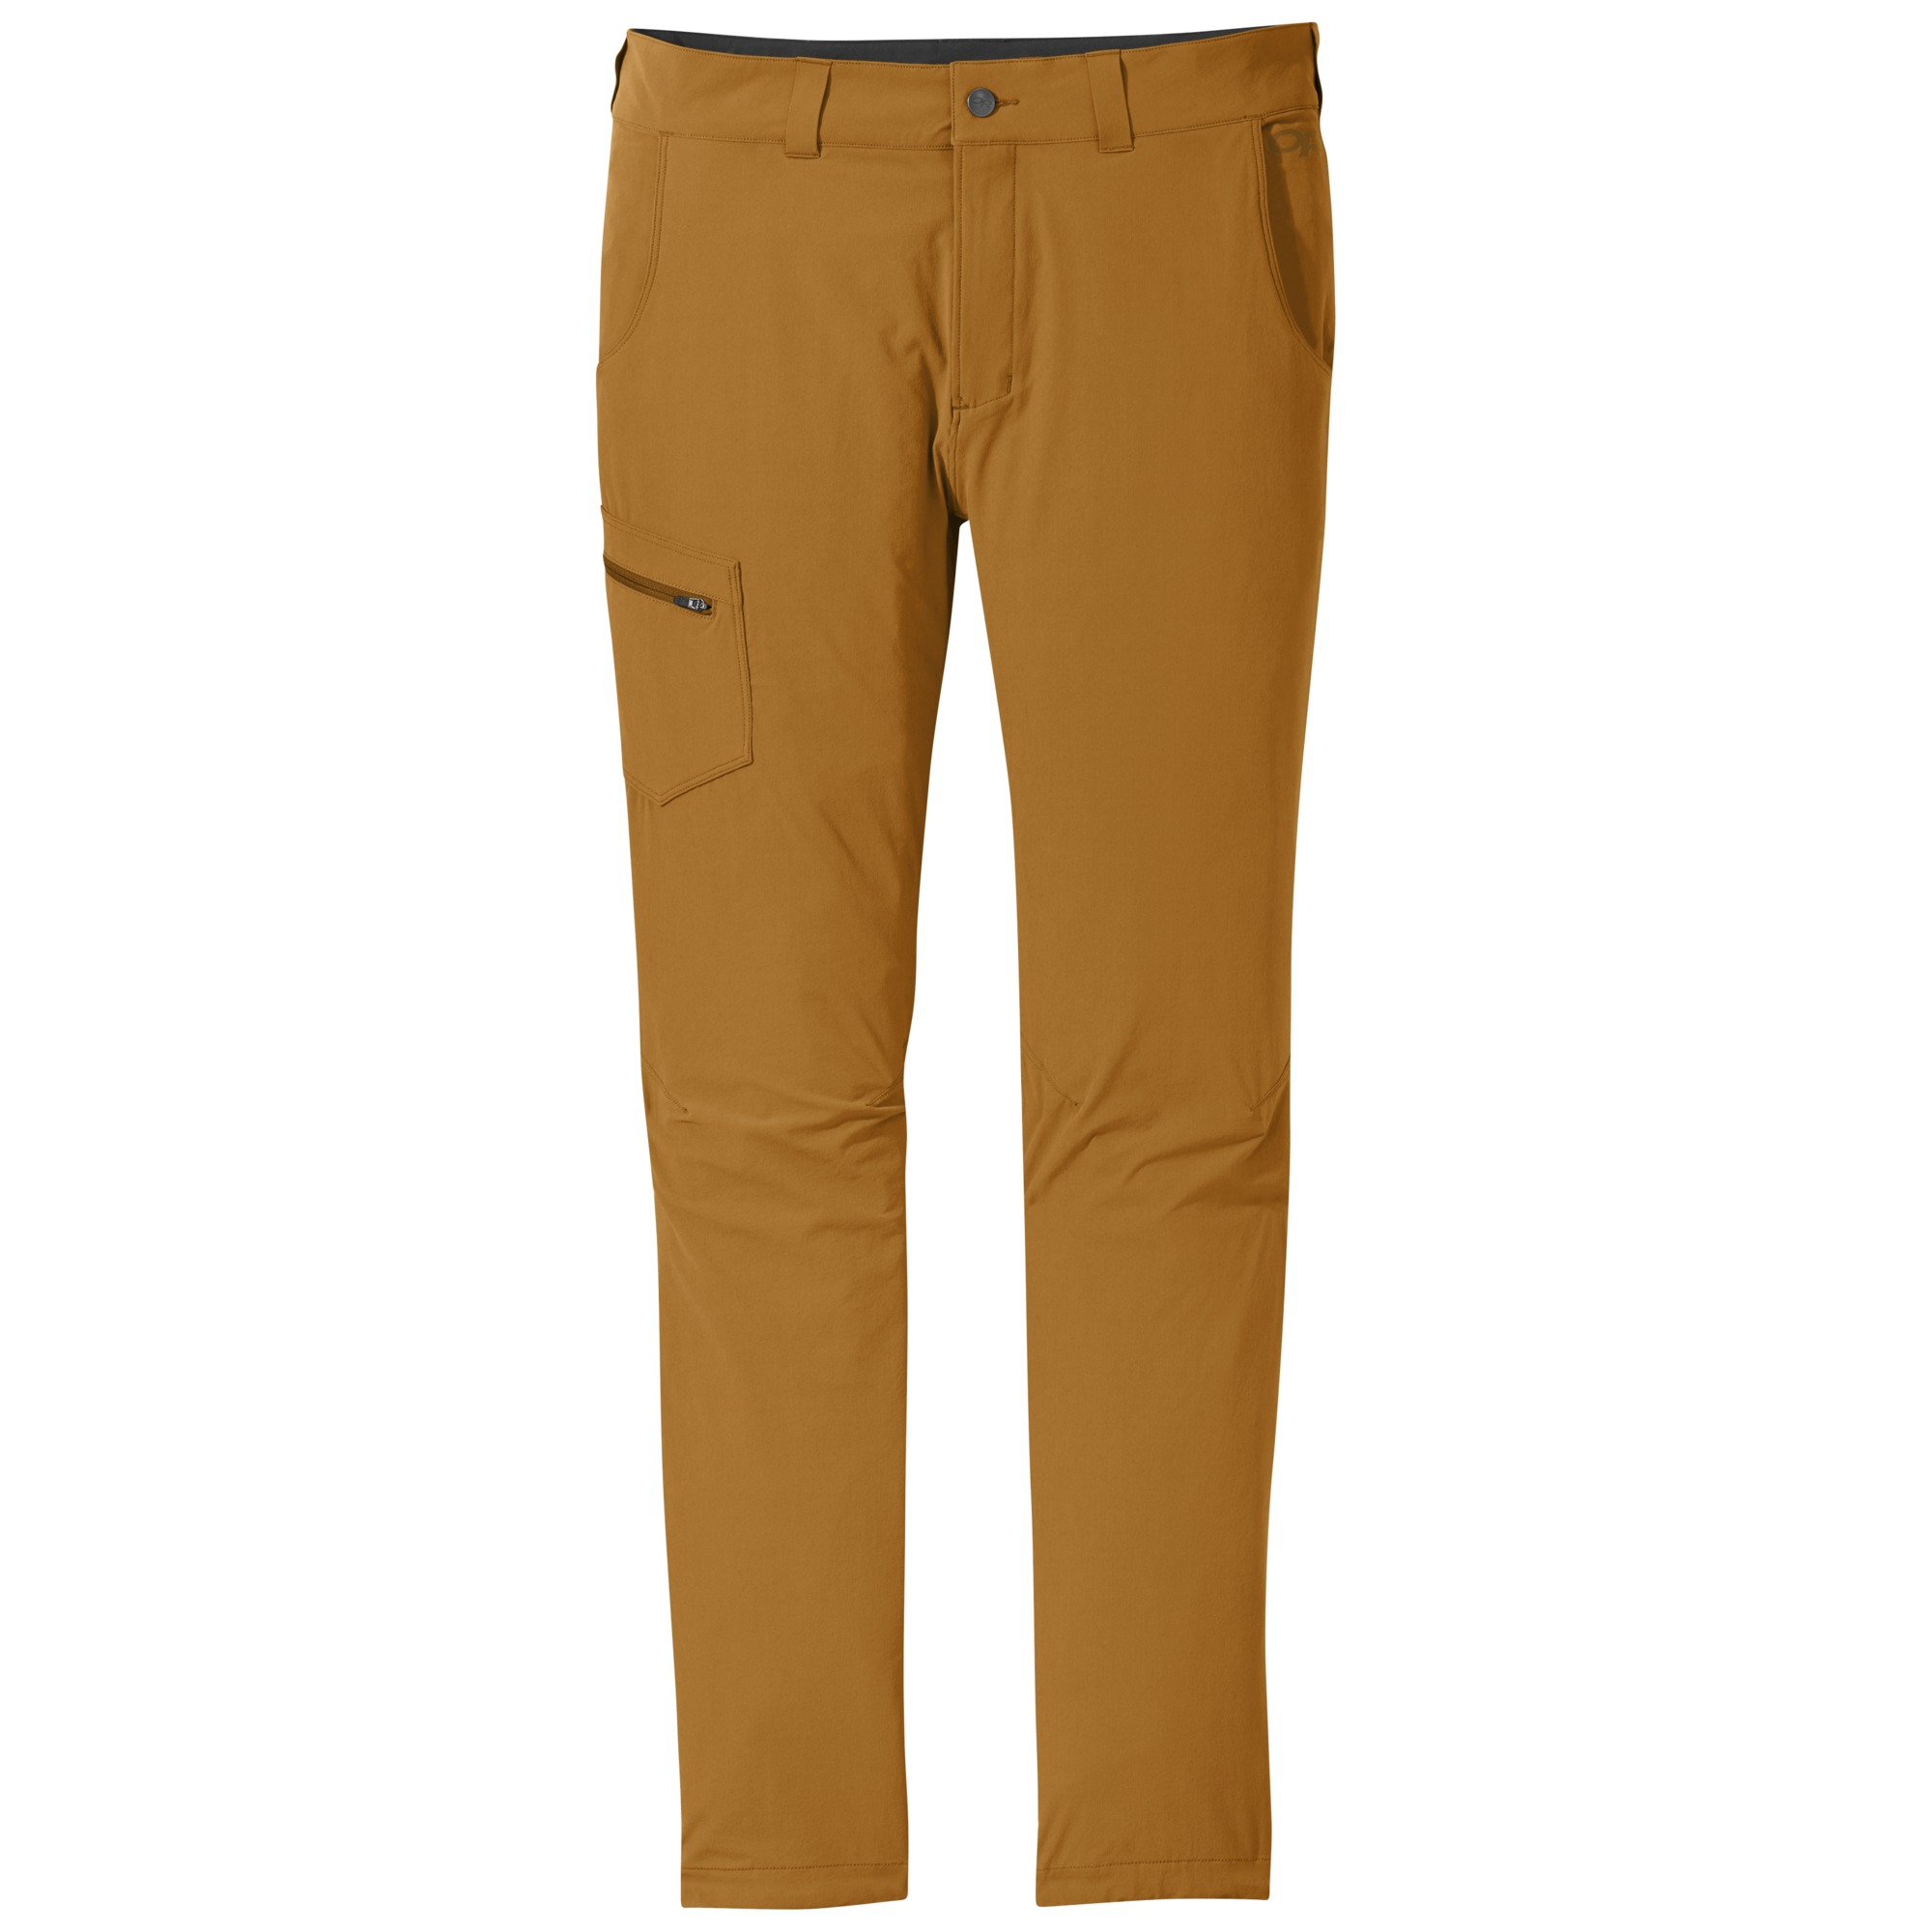 34fea75ddfcc74 Men's Ferrosi Pants - curry   Outdoor Research